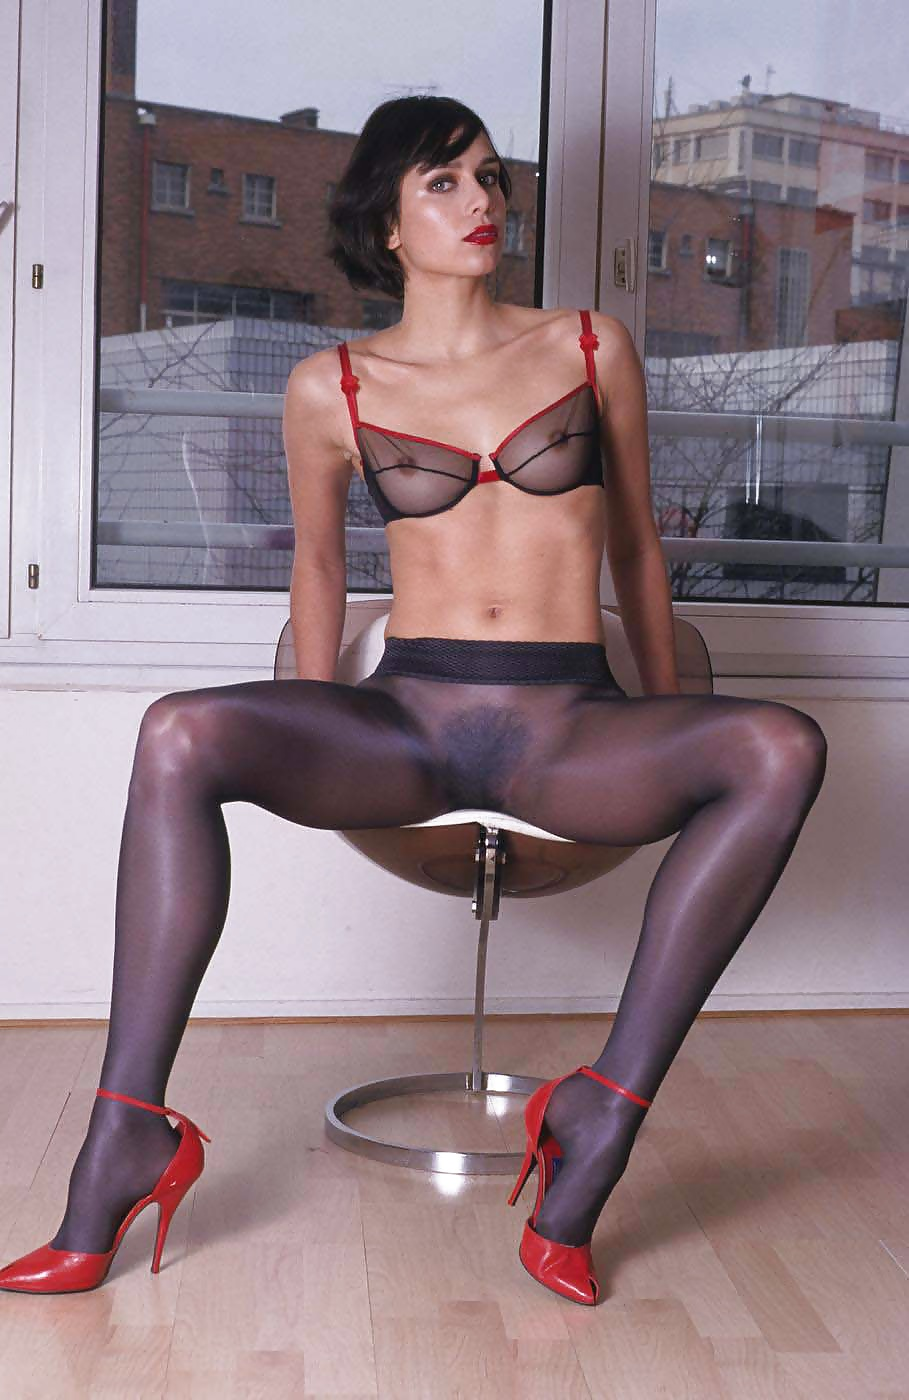 jc-penney-pantyhose-model